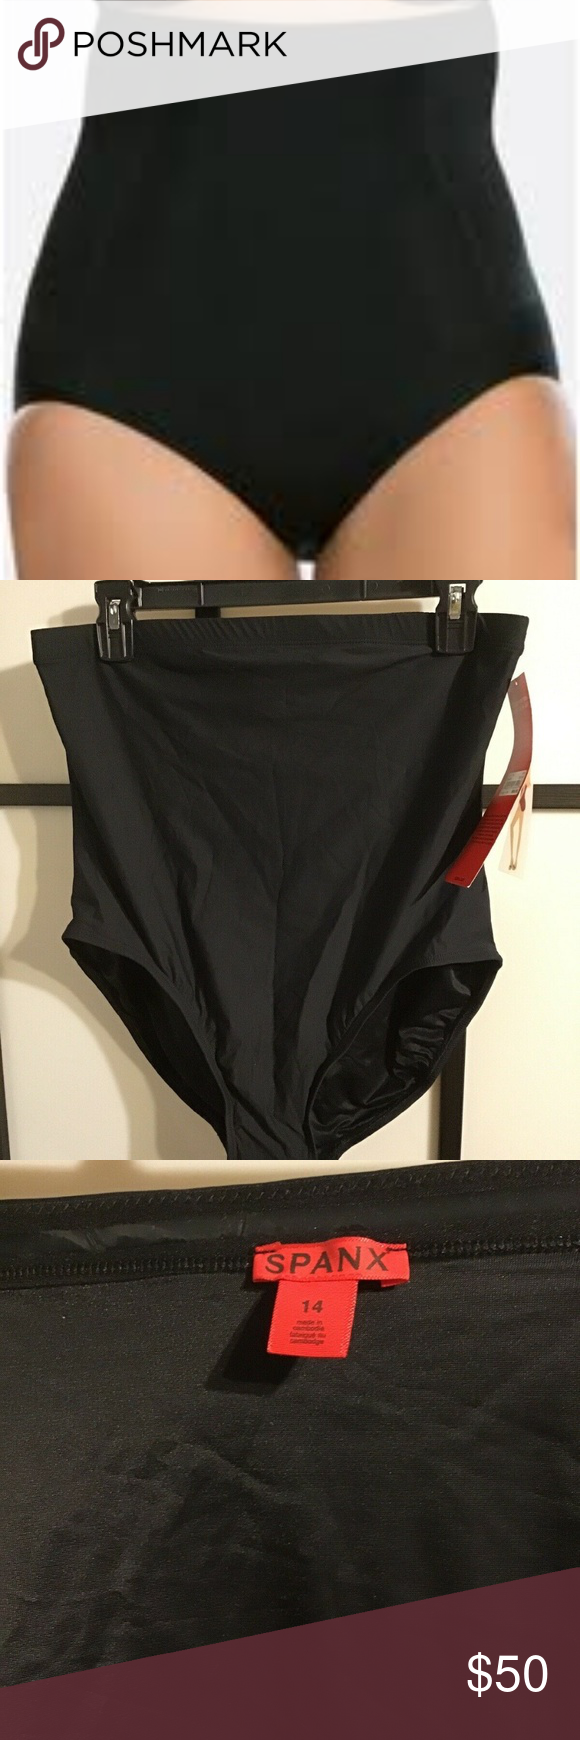 277b5e2f8a96e Spanx Shapewear 1366 High Waist Brief Size 14 Must have for any wardrobe  New with tags Smoke and pet free environment Spanx Shape wear Can double as  bottom ...